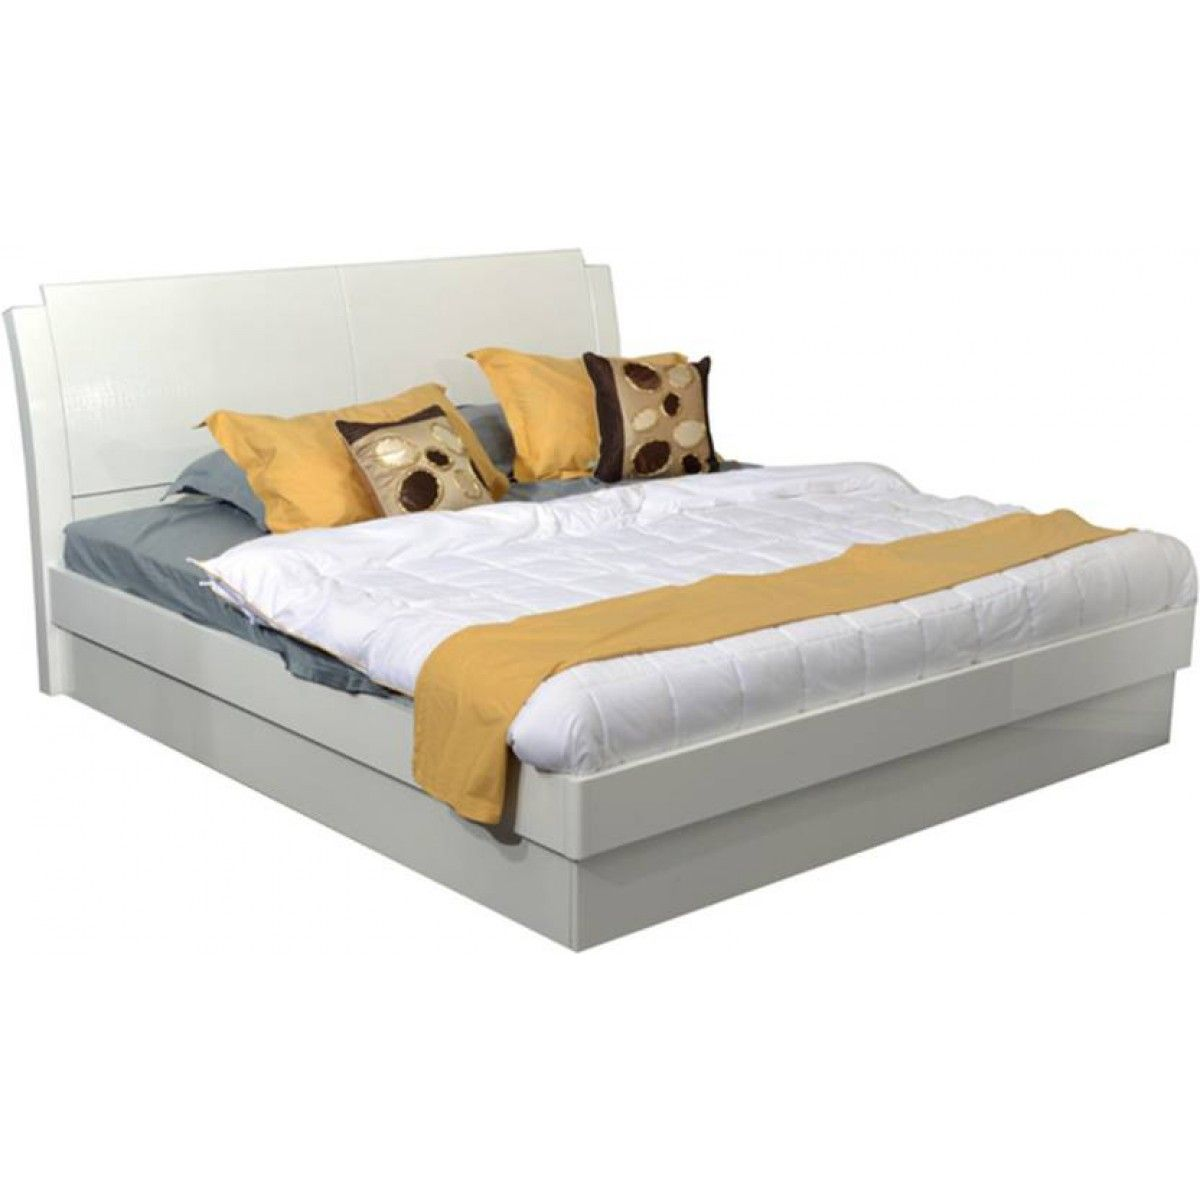 Aspen Crated White Queen Size Bed With Storage In 2018 Rock Solid